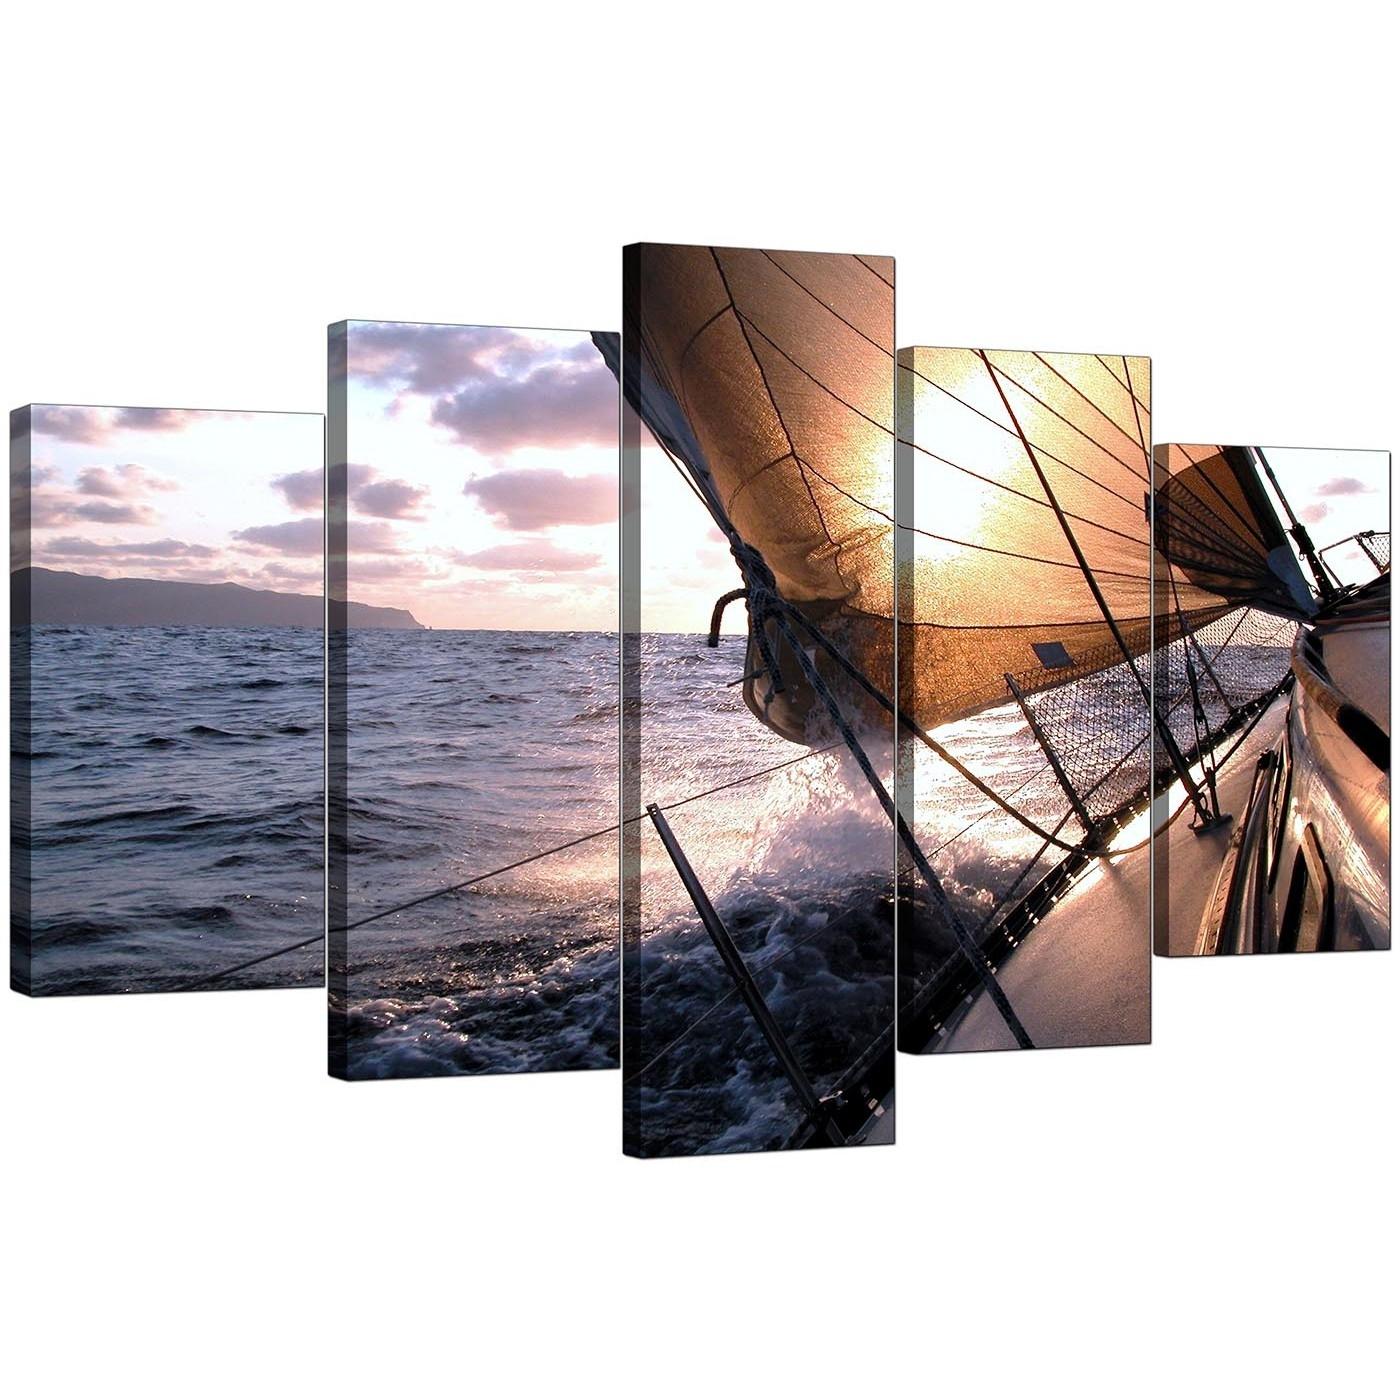 Boat Canvas Prints Uk For Your Living Room – 5 Piece For 2017 5 Piece Canvas Wall Art (Gallery 3 of 20)